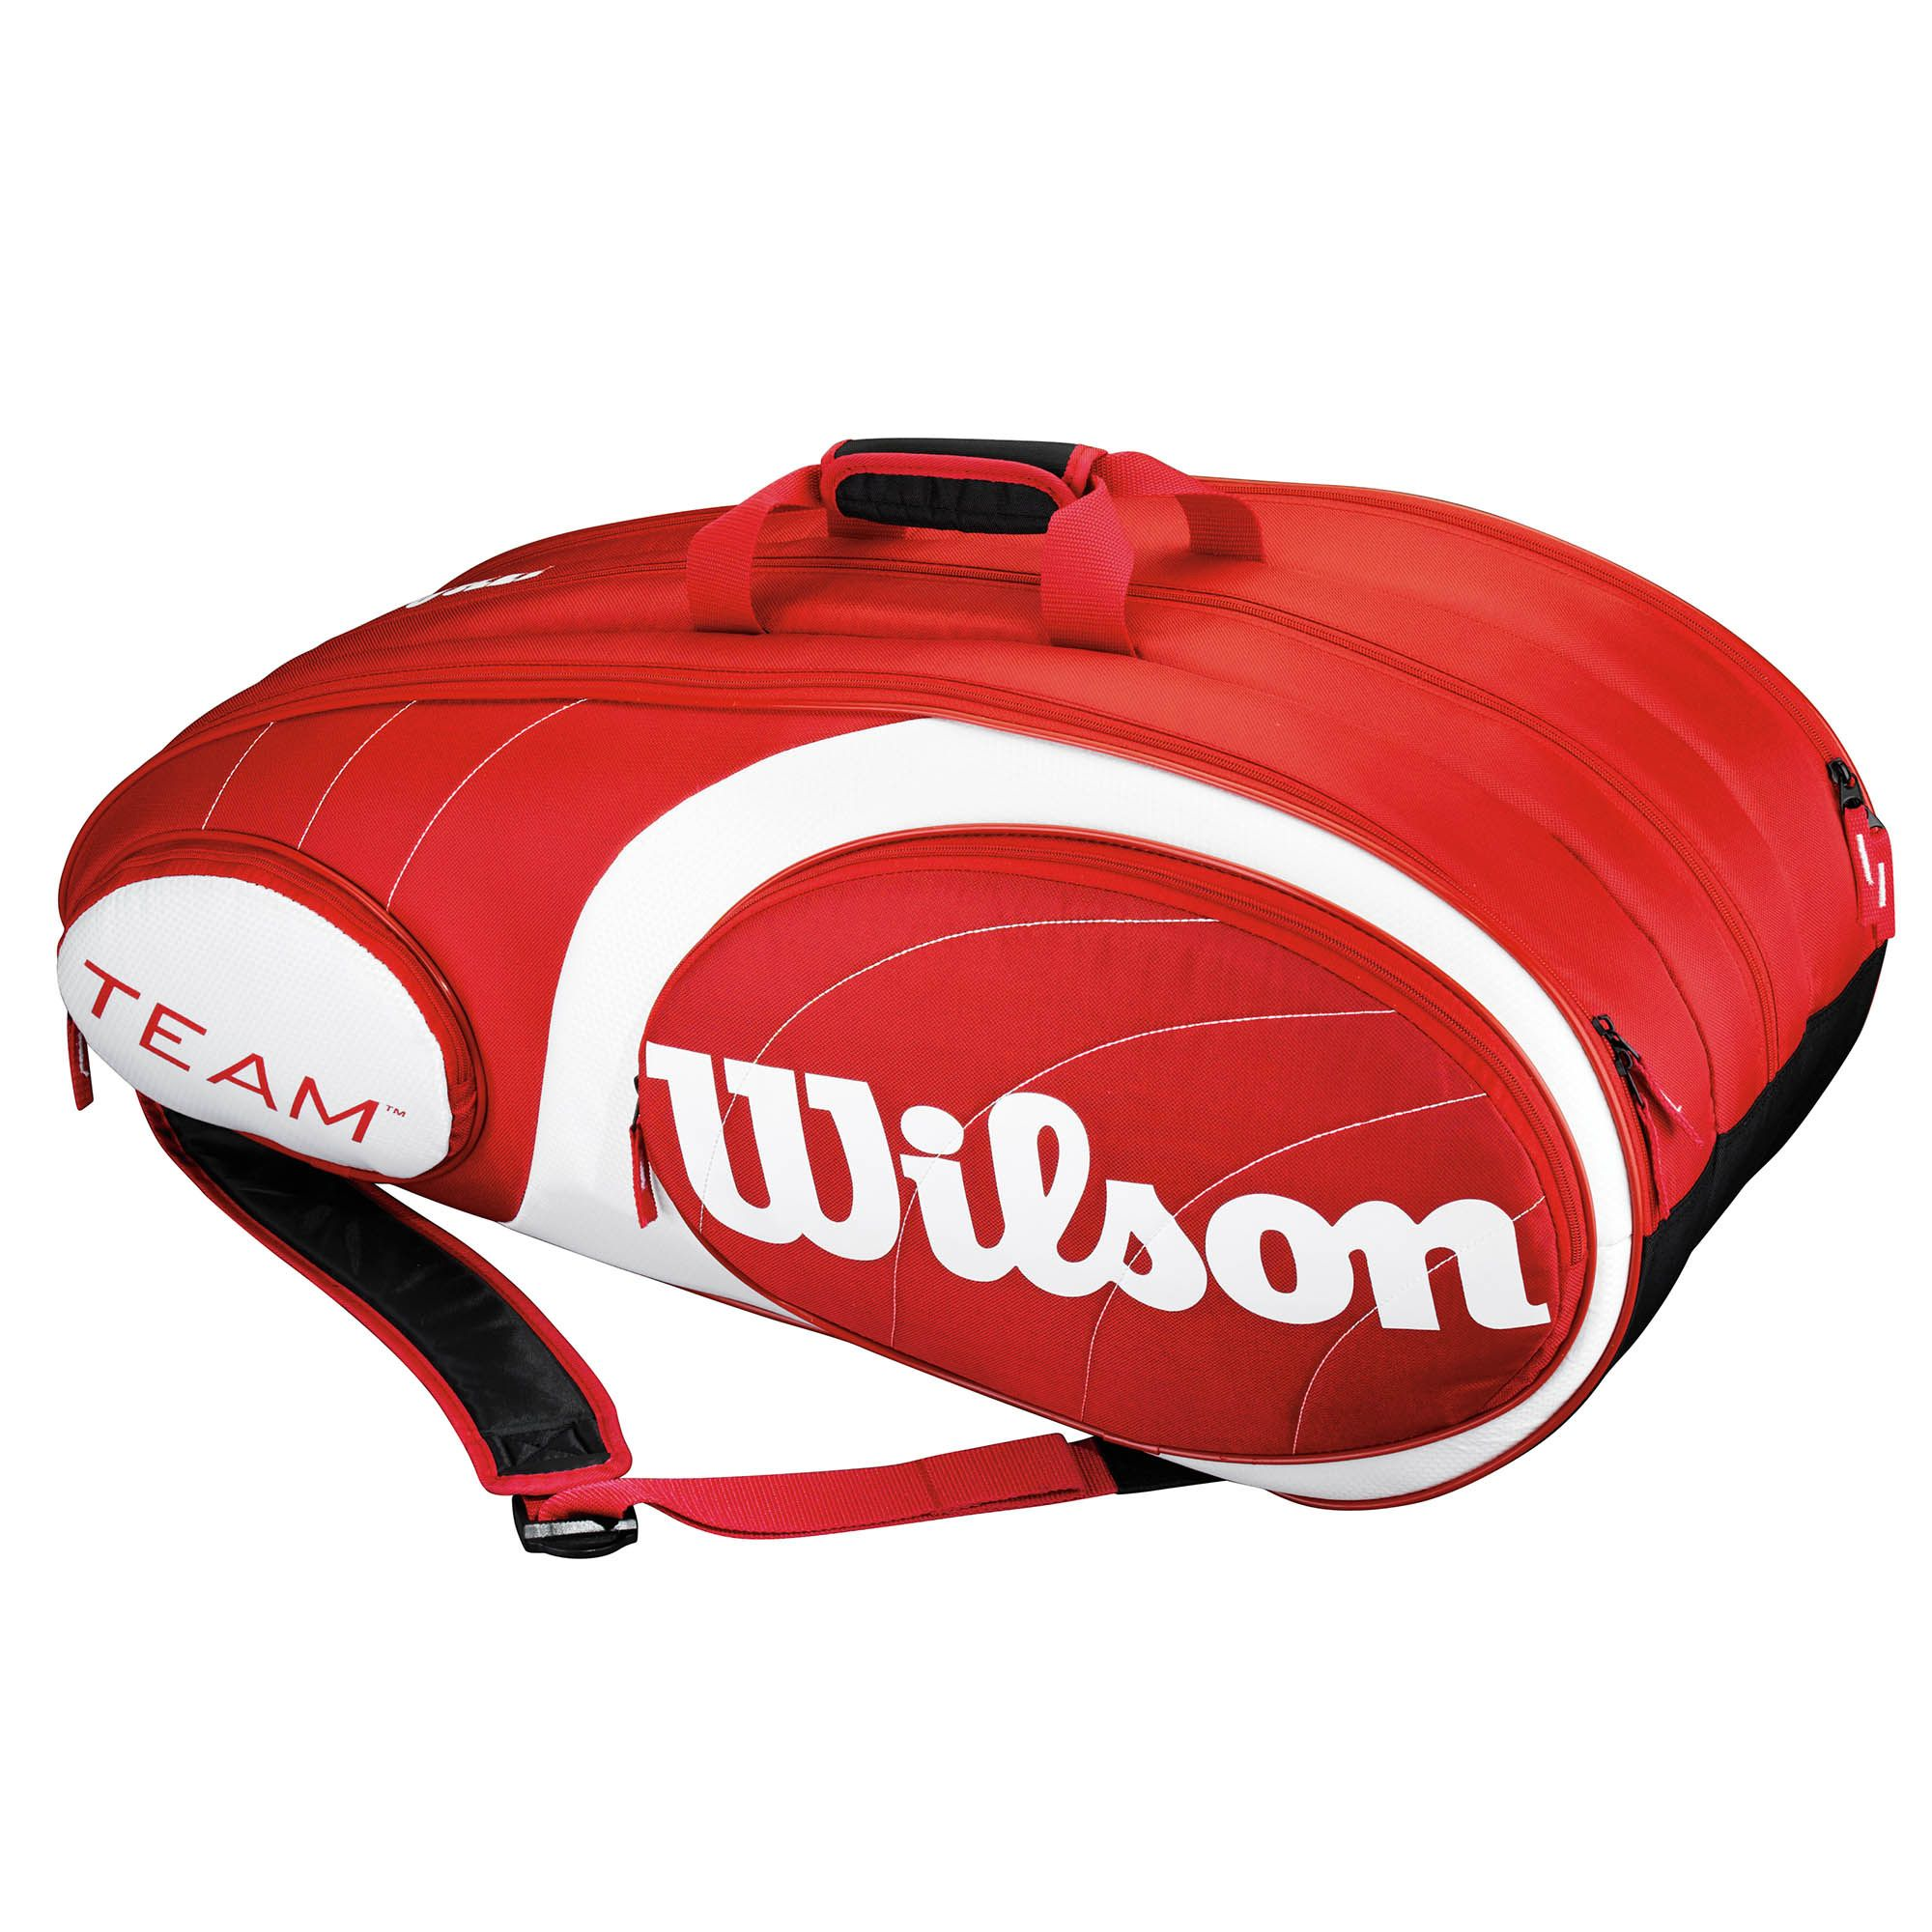 Wilson Team Red 12 Racket Bag